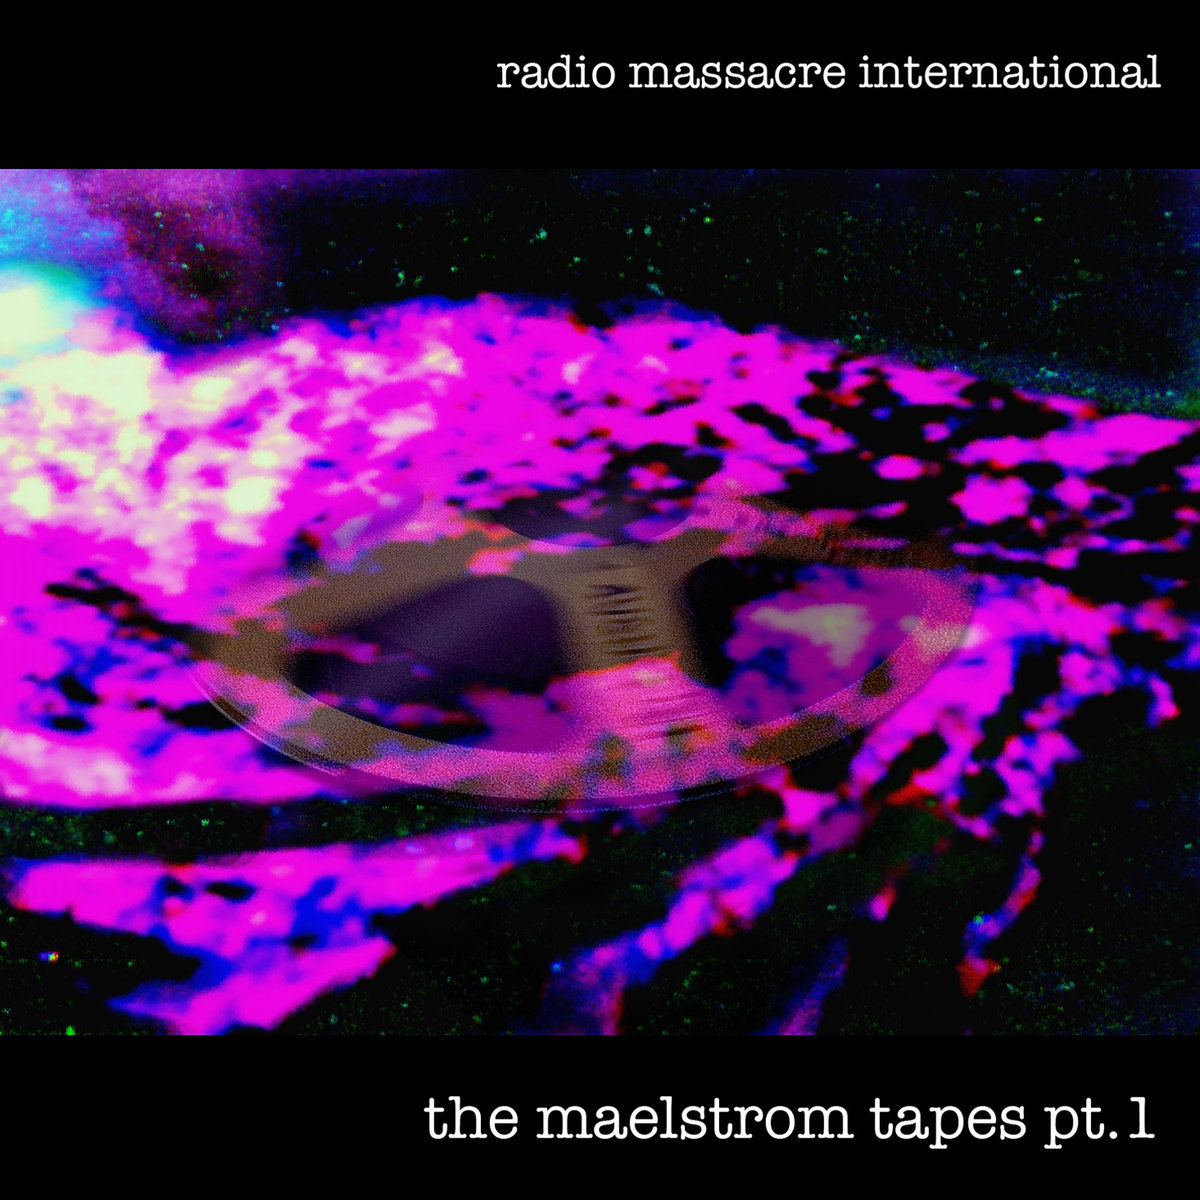 the maelstrom tapes part 1